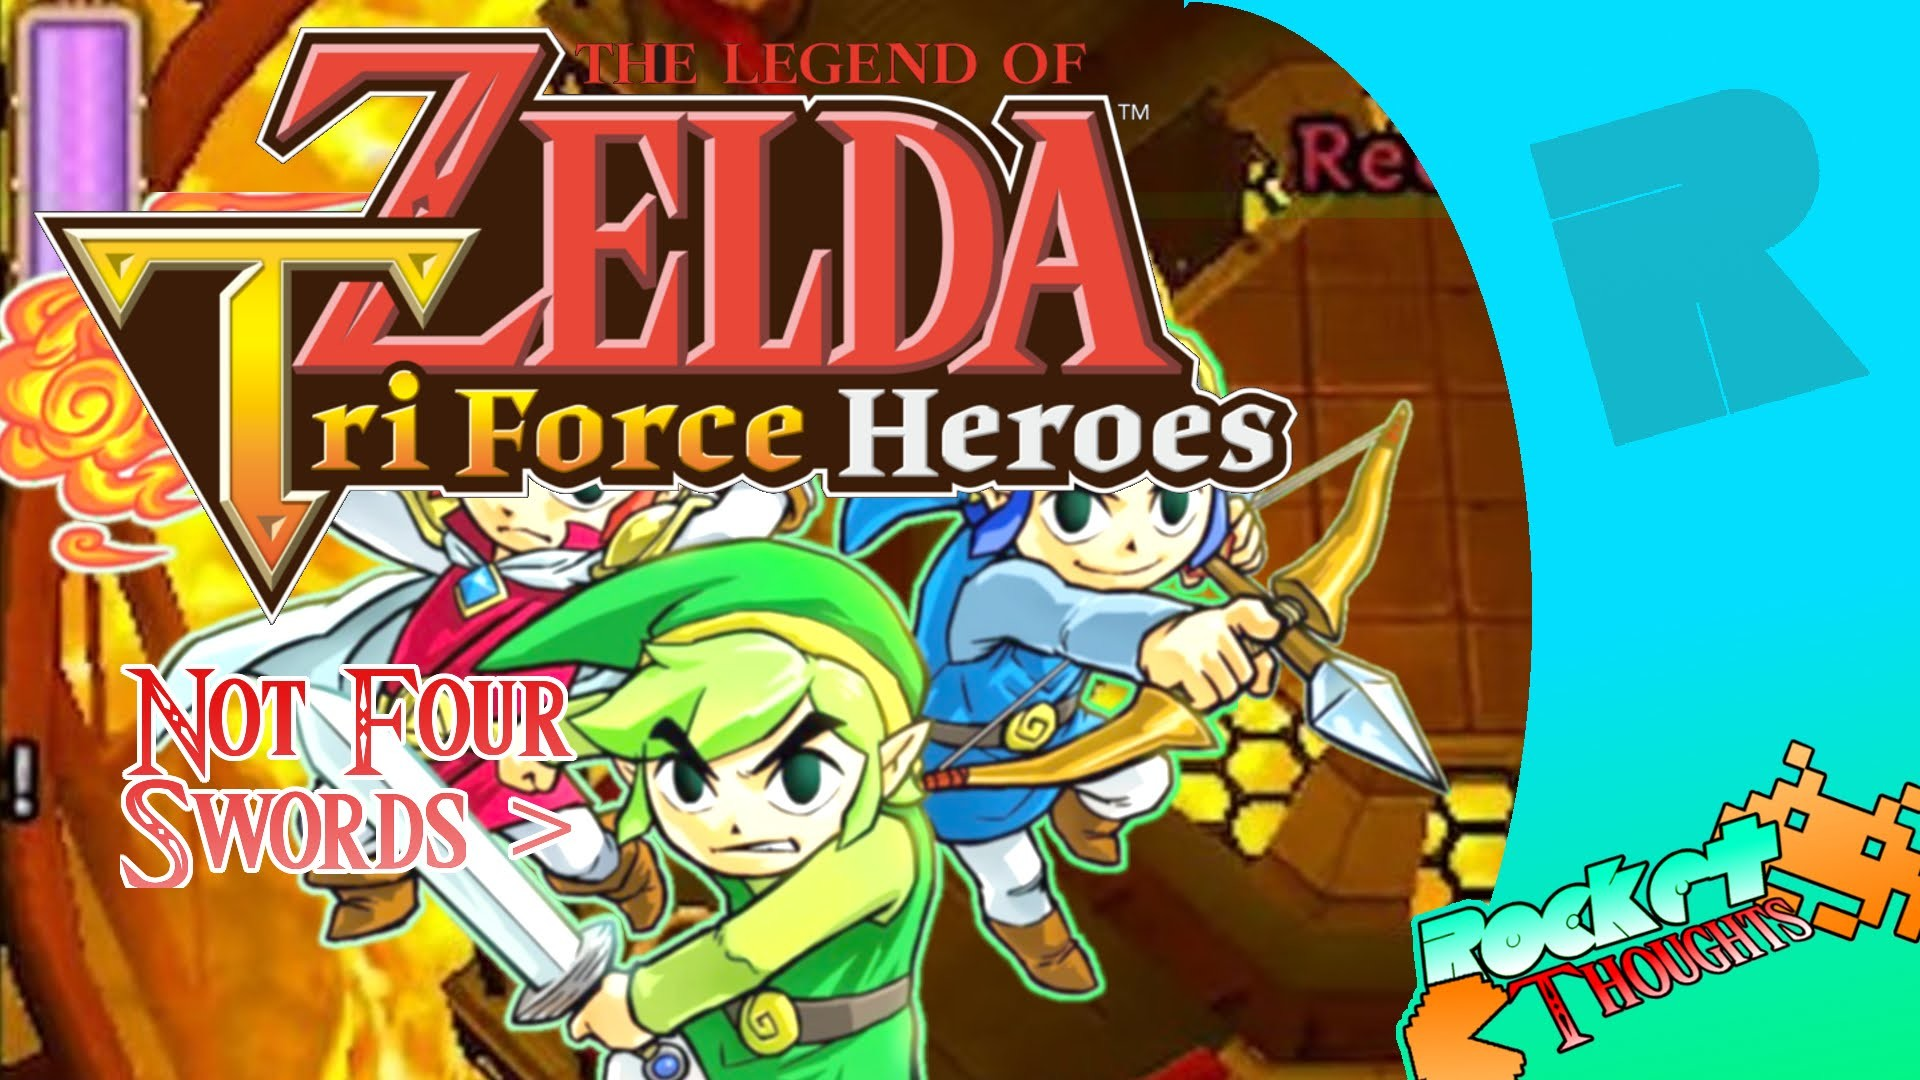 Res: 1920x1080, The Legend Of Zelda: Triforce Heroes ISN'T Four Swords! EXPLAINED Gameplay  - Rocket Thoughts - YouTube